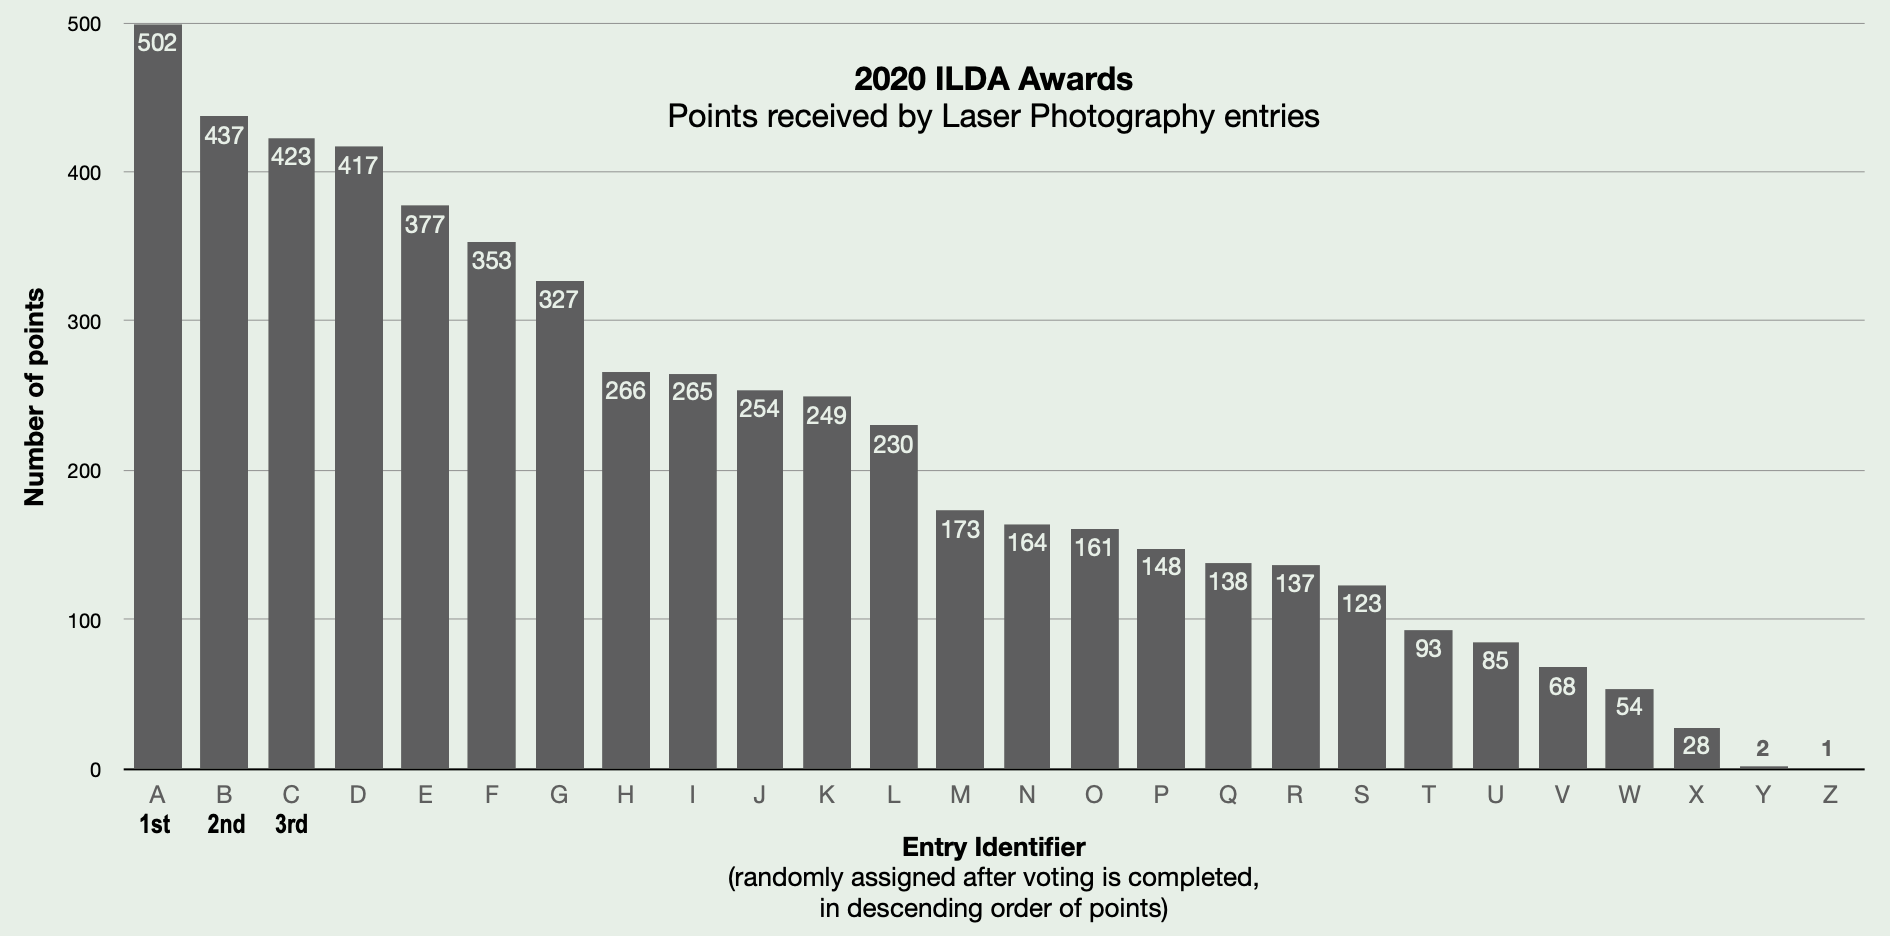 2020 Laser Photography result chart